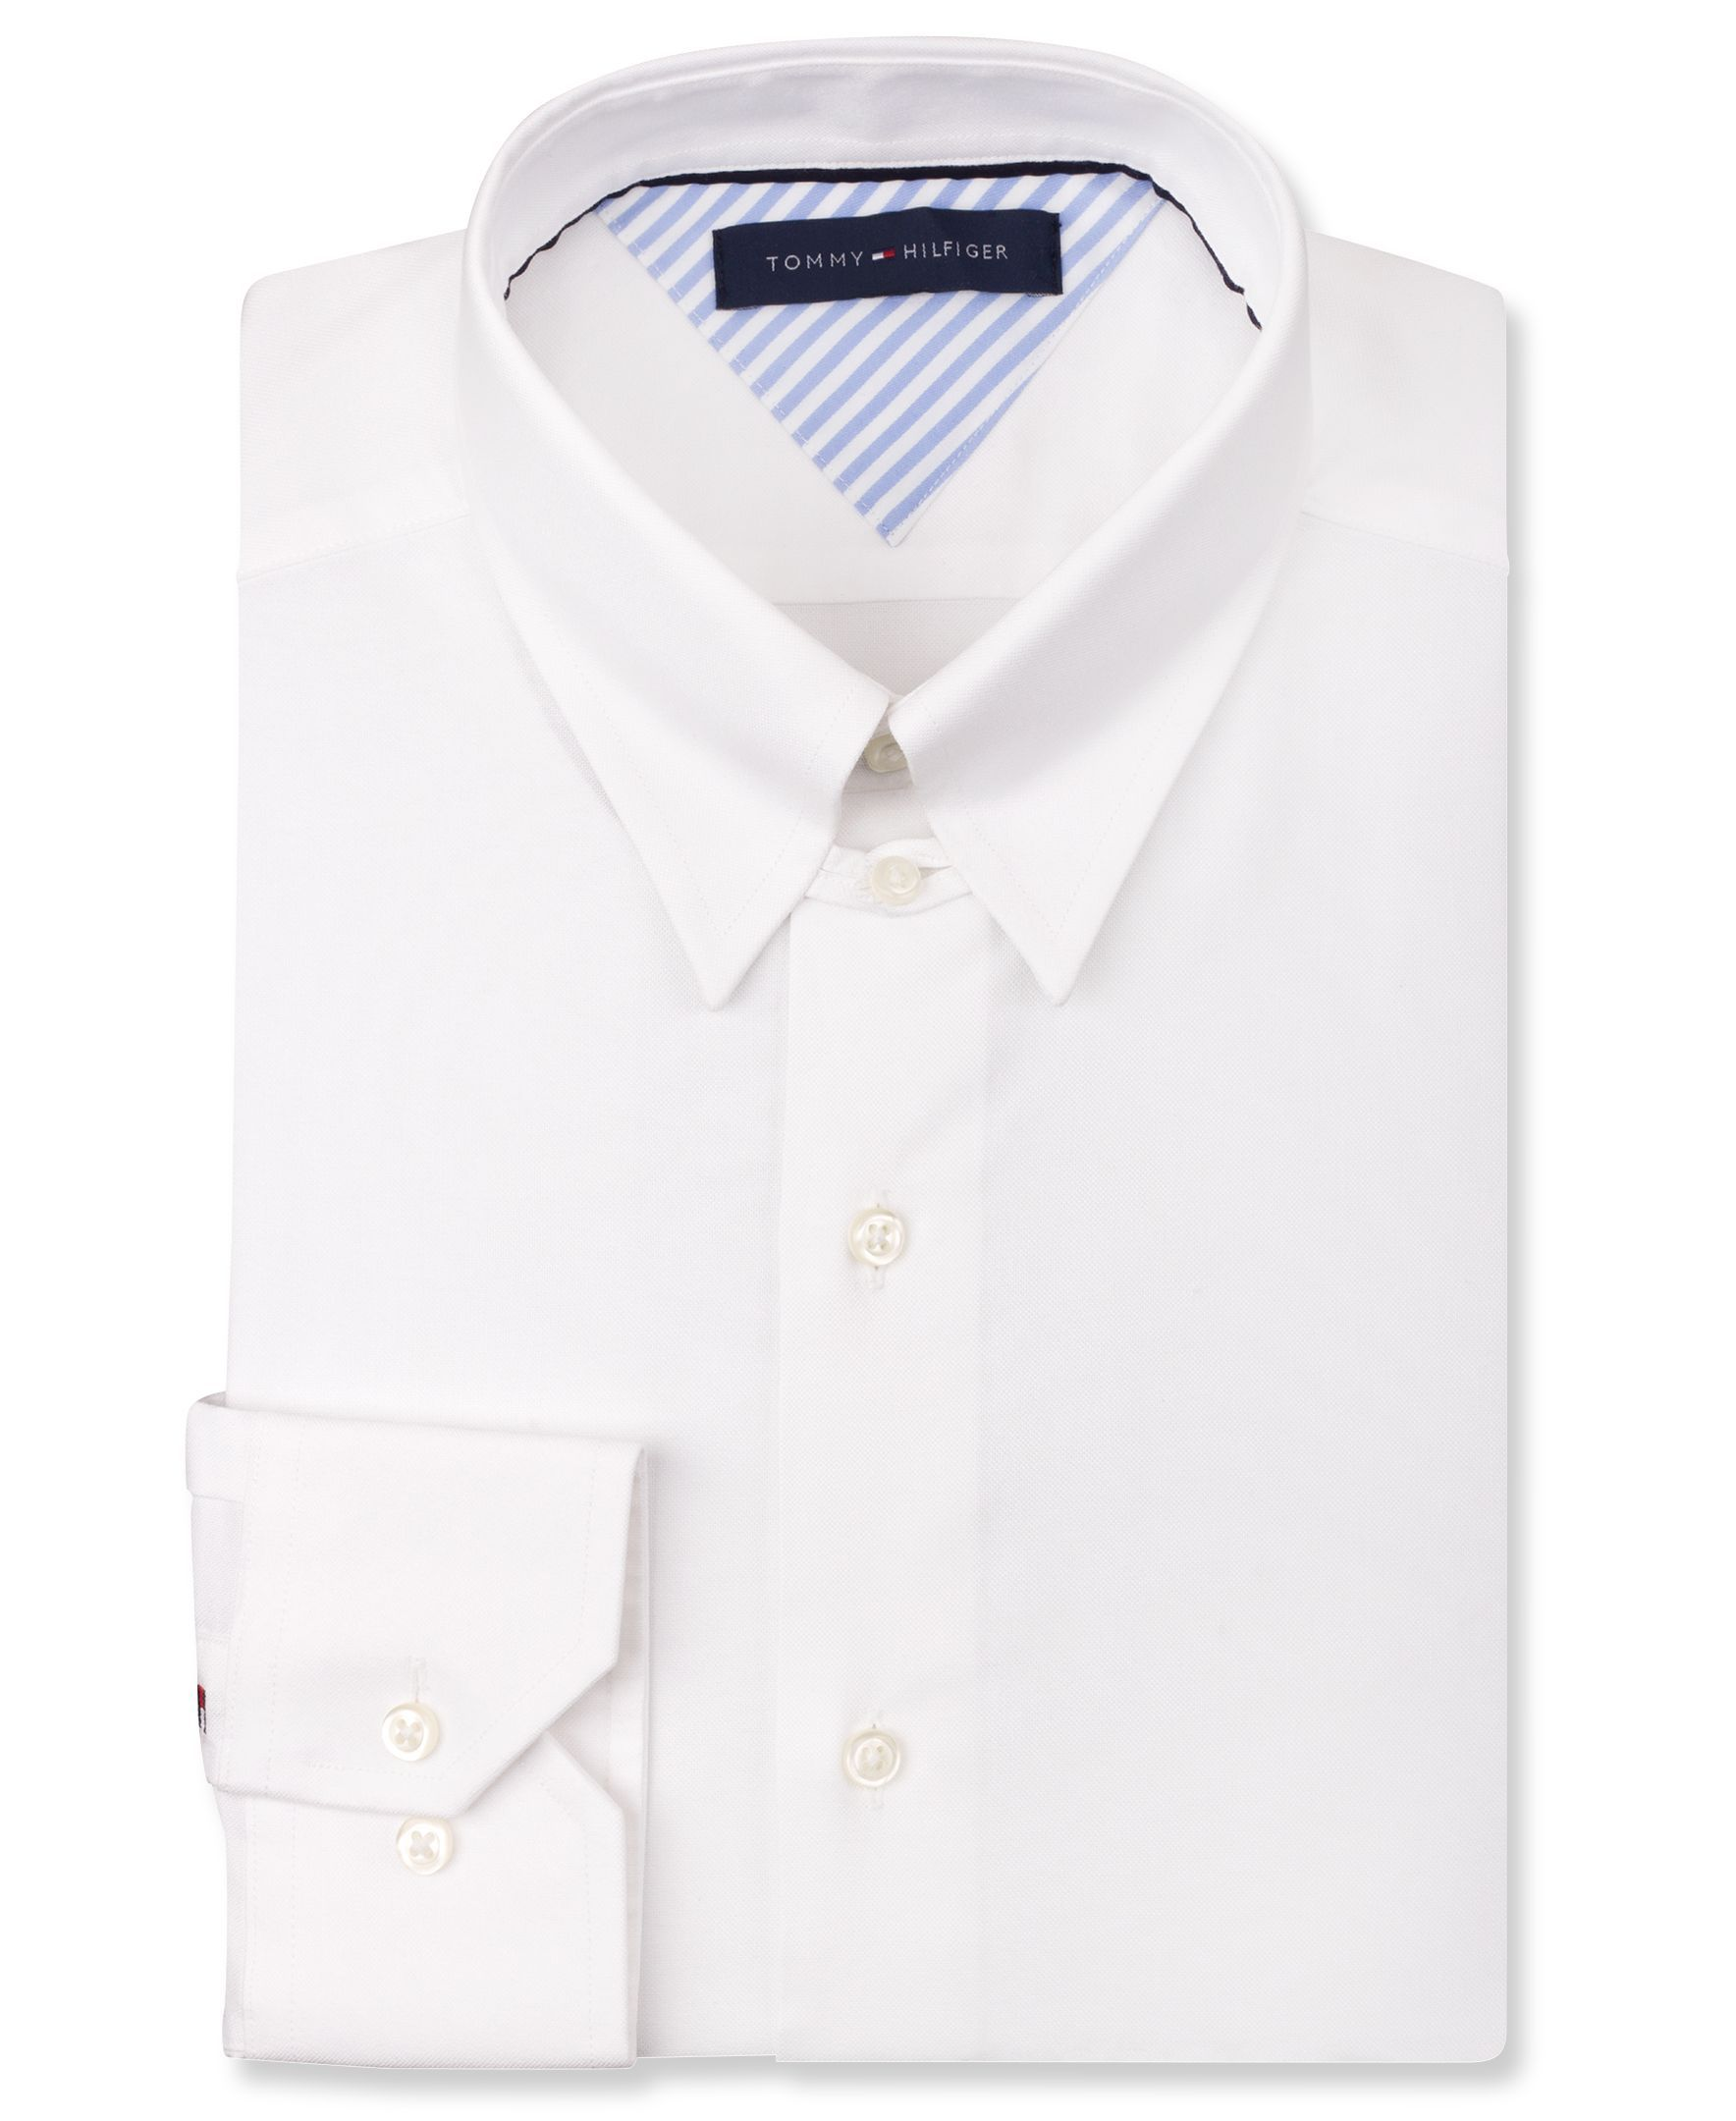 719988d378e Tommy Hilfiger White Tab Collar Dress Shirt